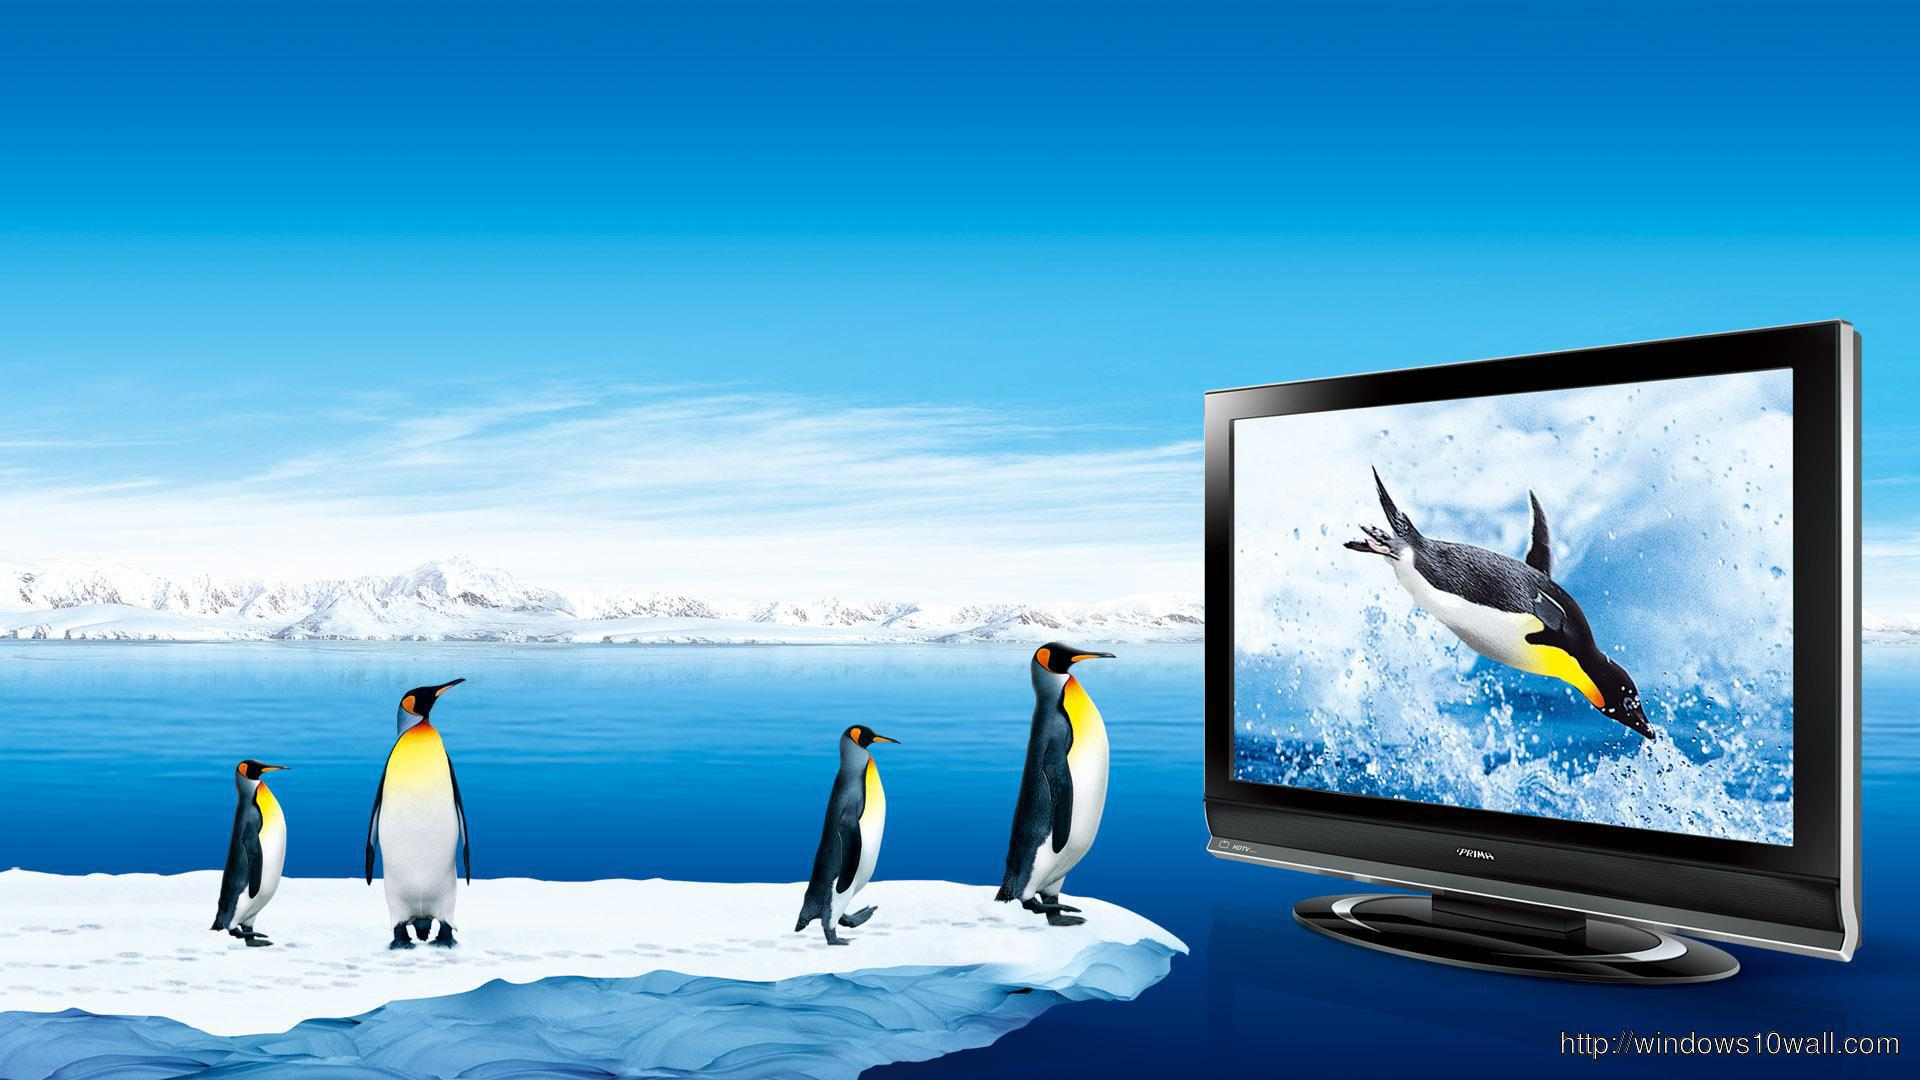 funny-penguins-watch-tv-wallpaper